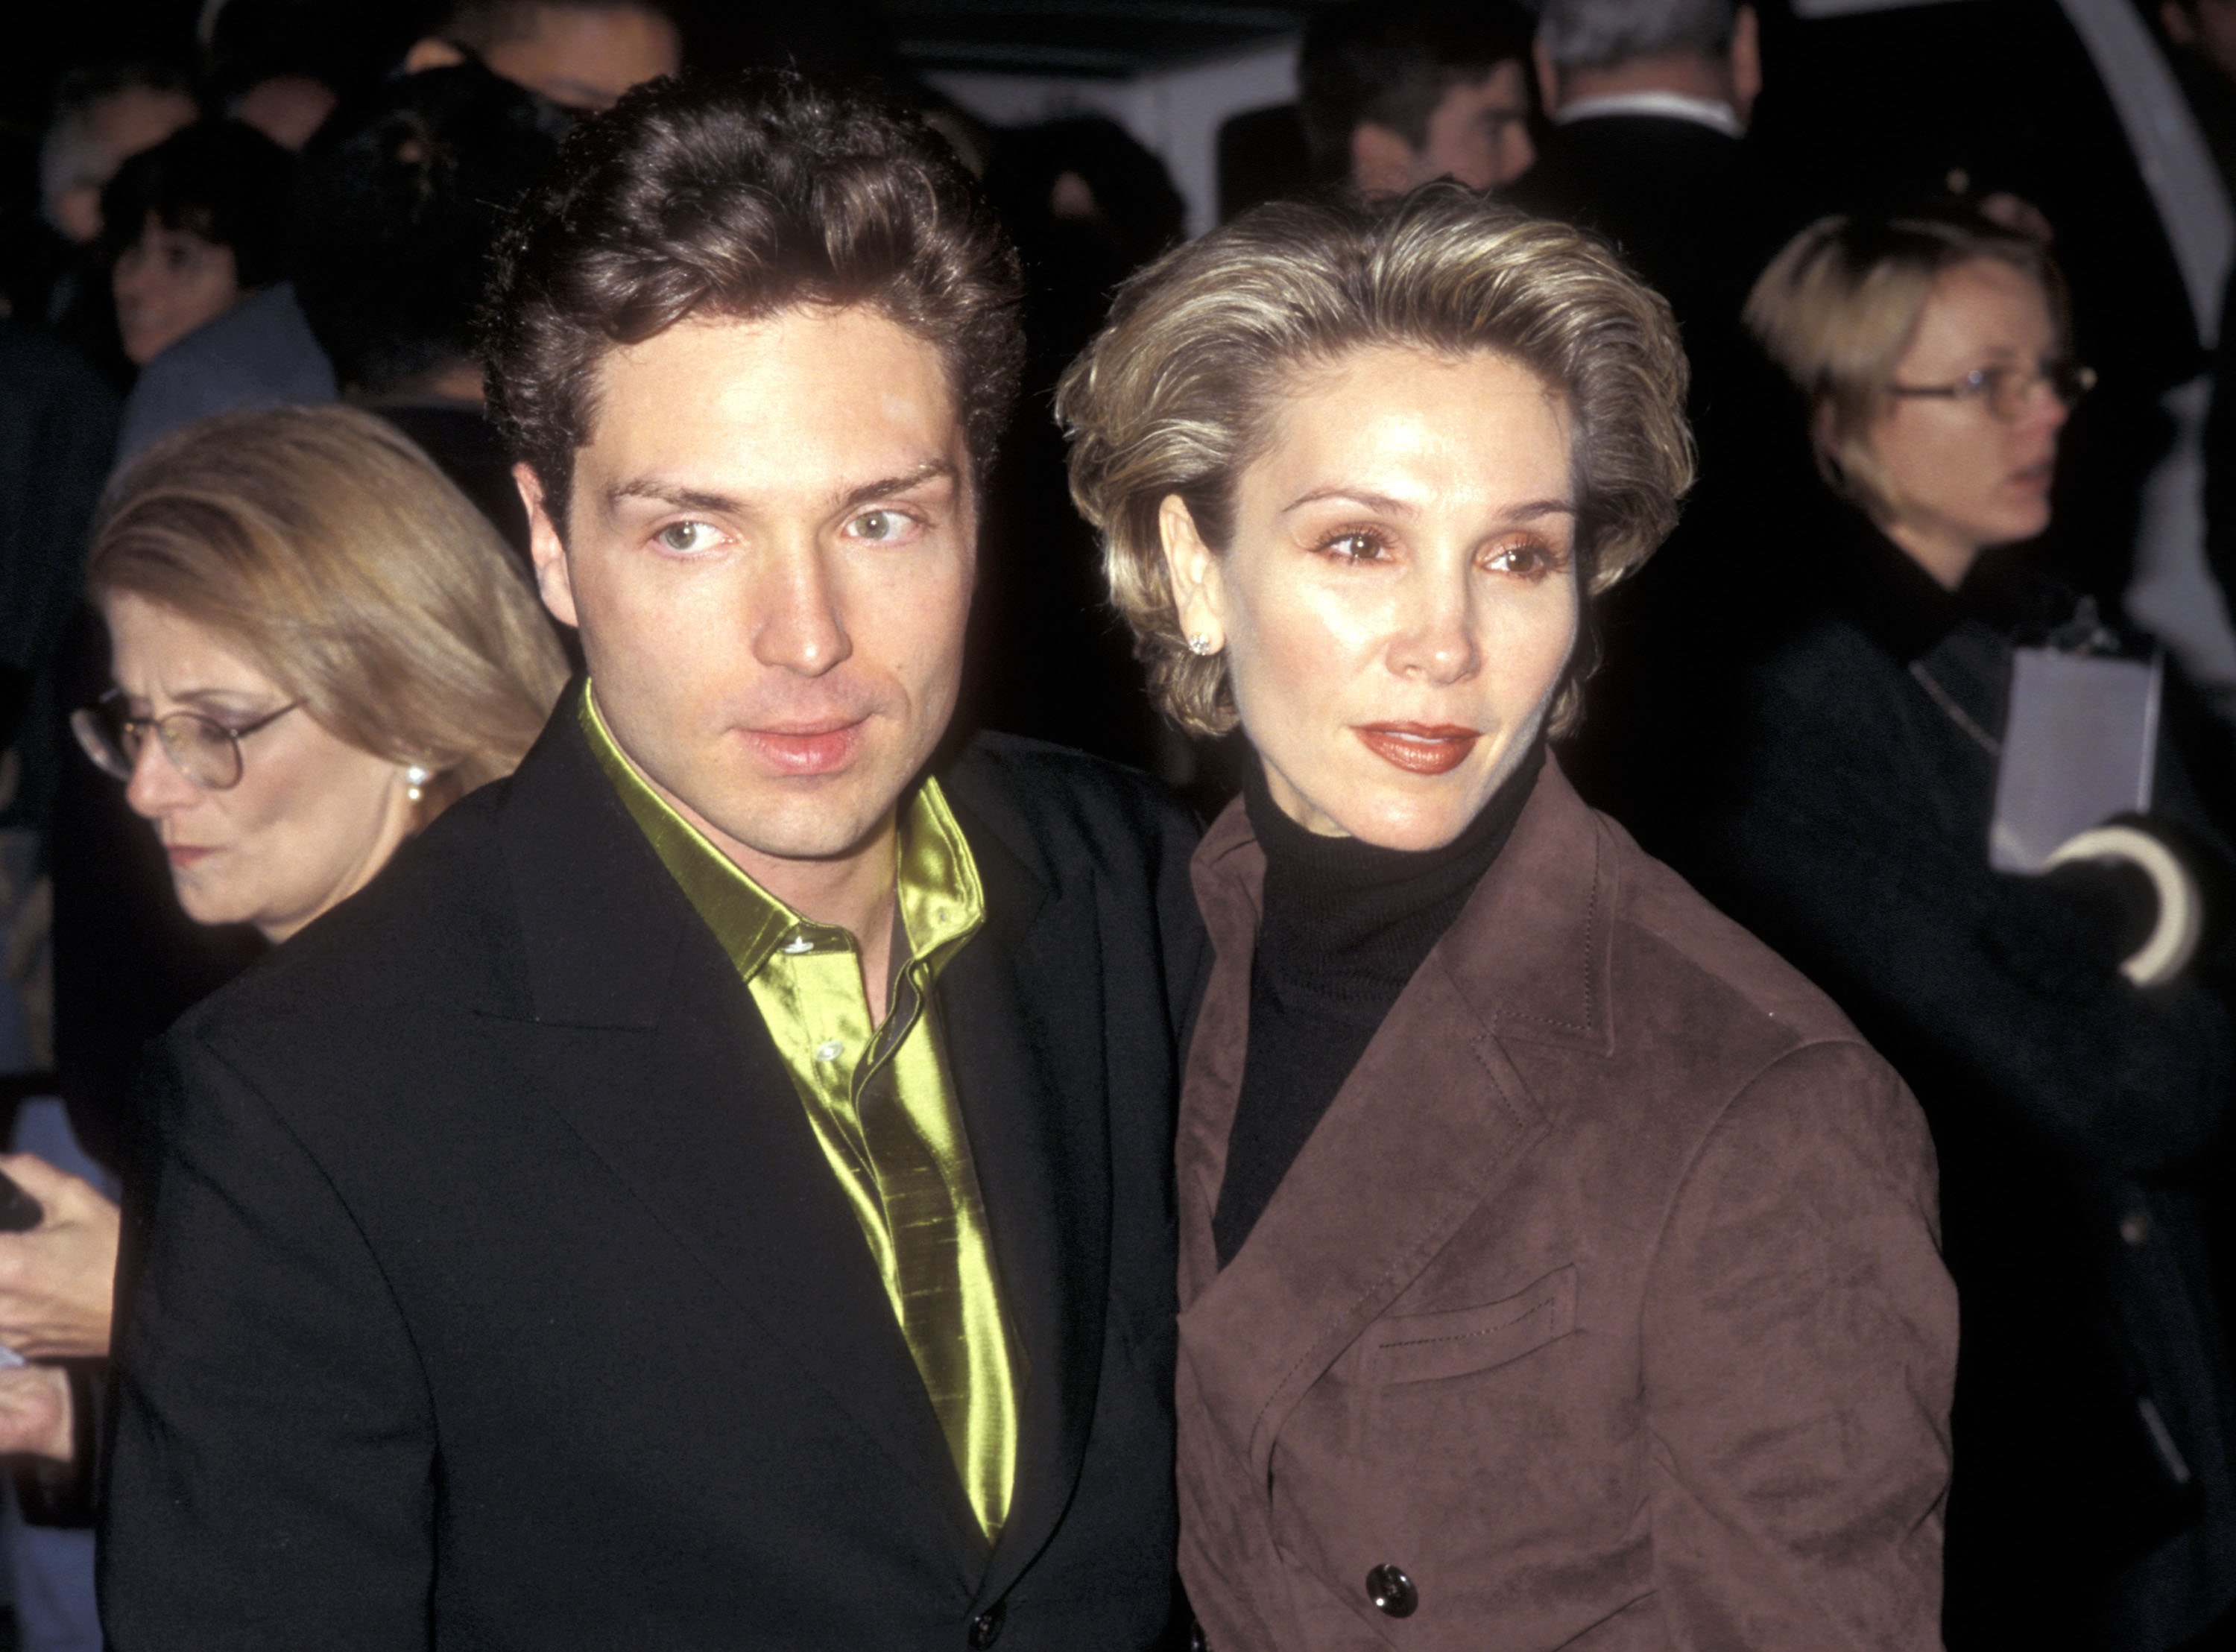 Richard Marx and actress Cynthia Rhodes attend The Mirror Has Two Face New York City Premiere on November 10, 1996 | Photo: GettyImages